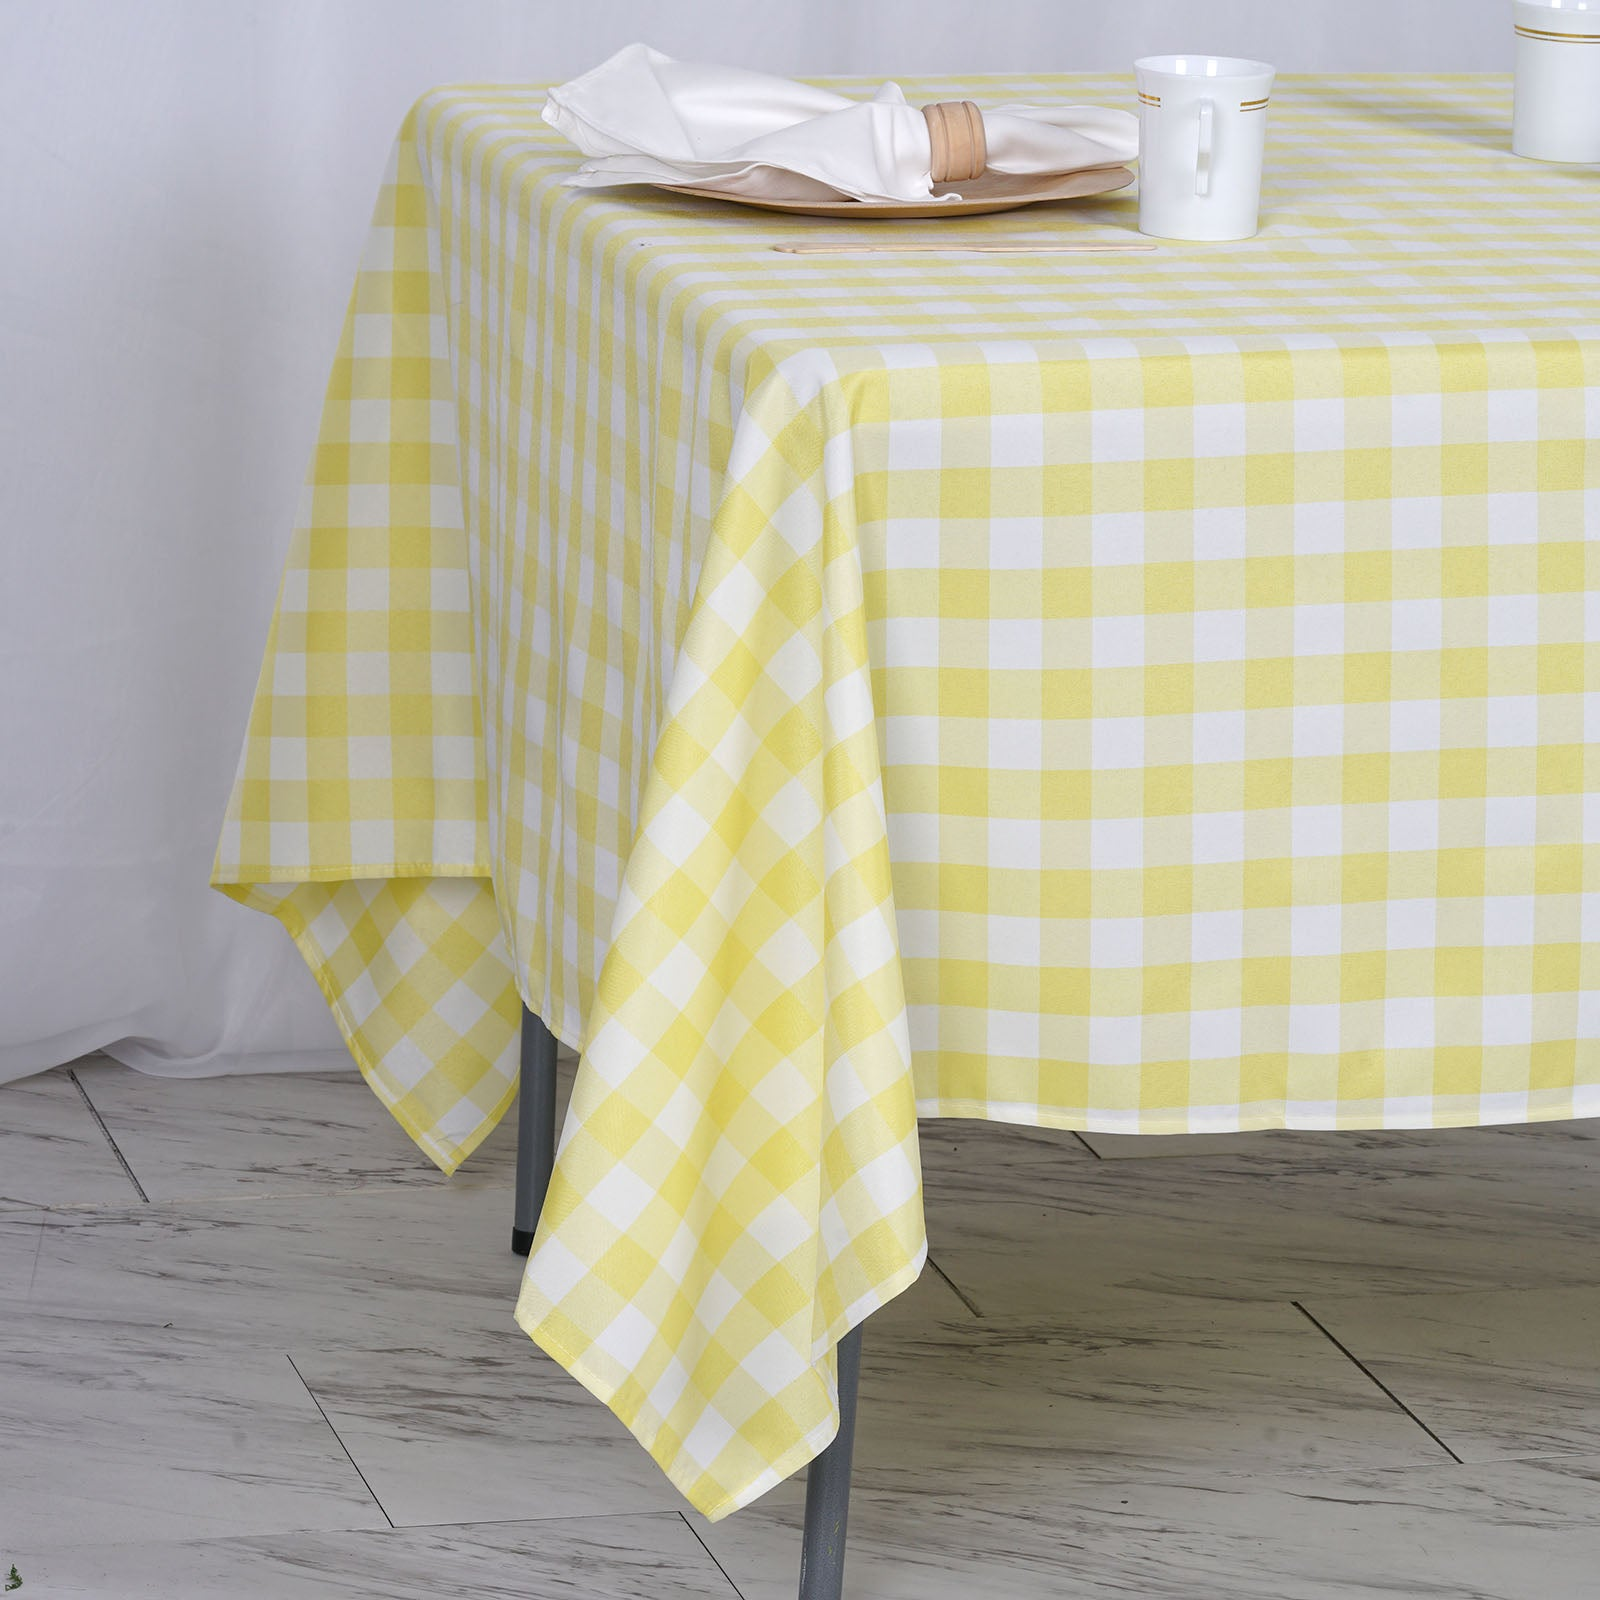 Ordinaire Tablecloths Factory